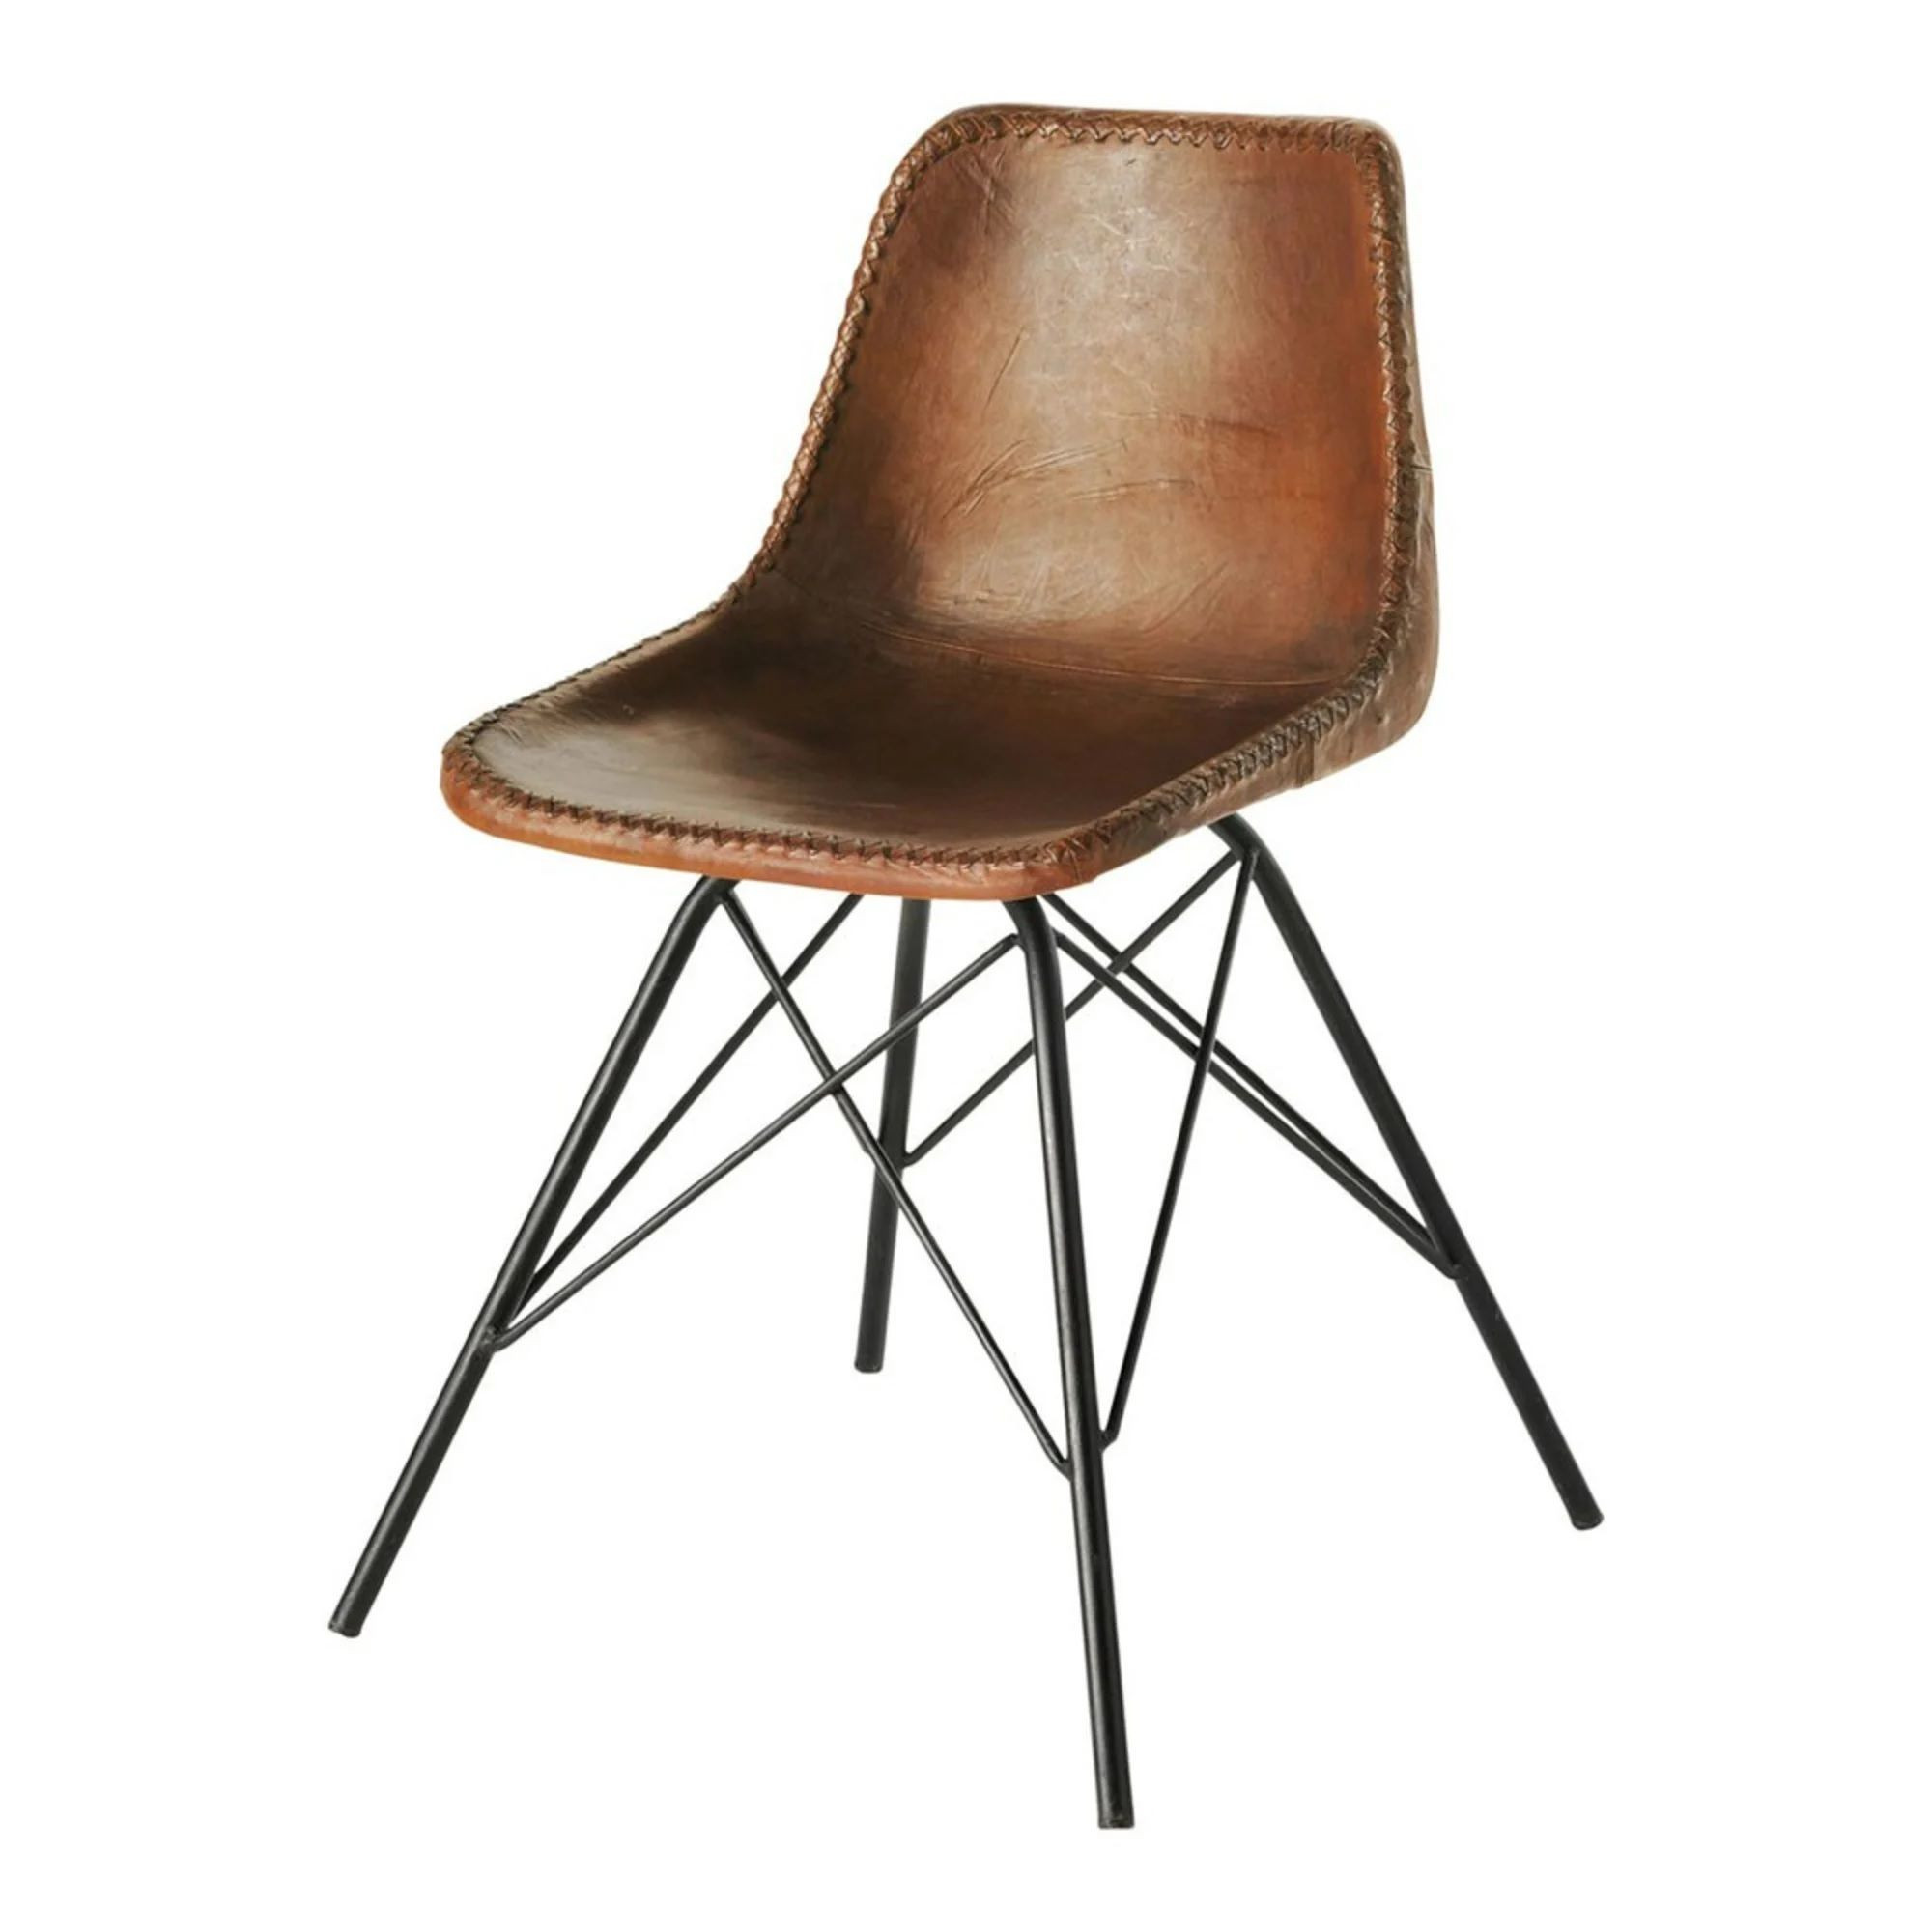 Leather and iron industrial dining chair moulded plastic restaurant living chairs High Quality Superior Wholesale Factory